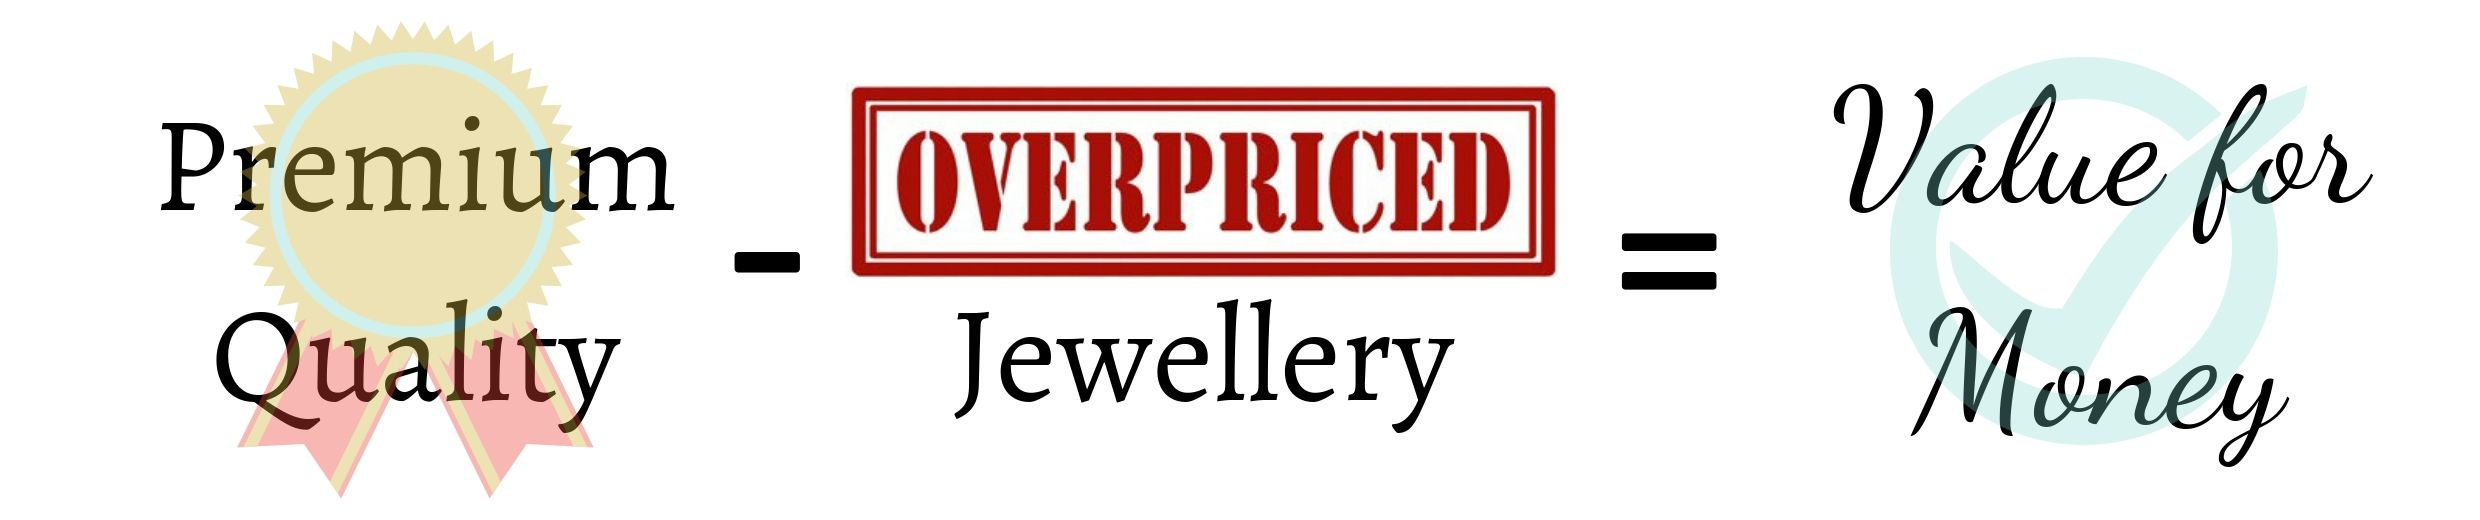 Terbos Jewellery - We Stop The Madness Of Overpriced Jewellery